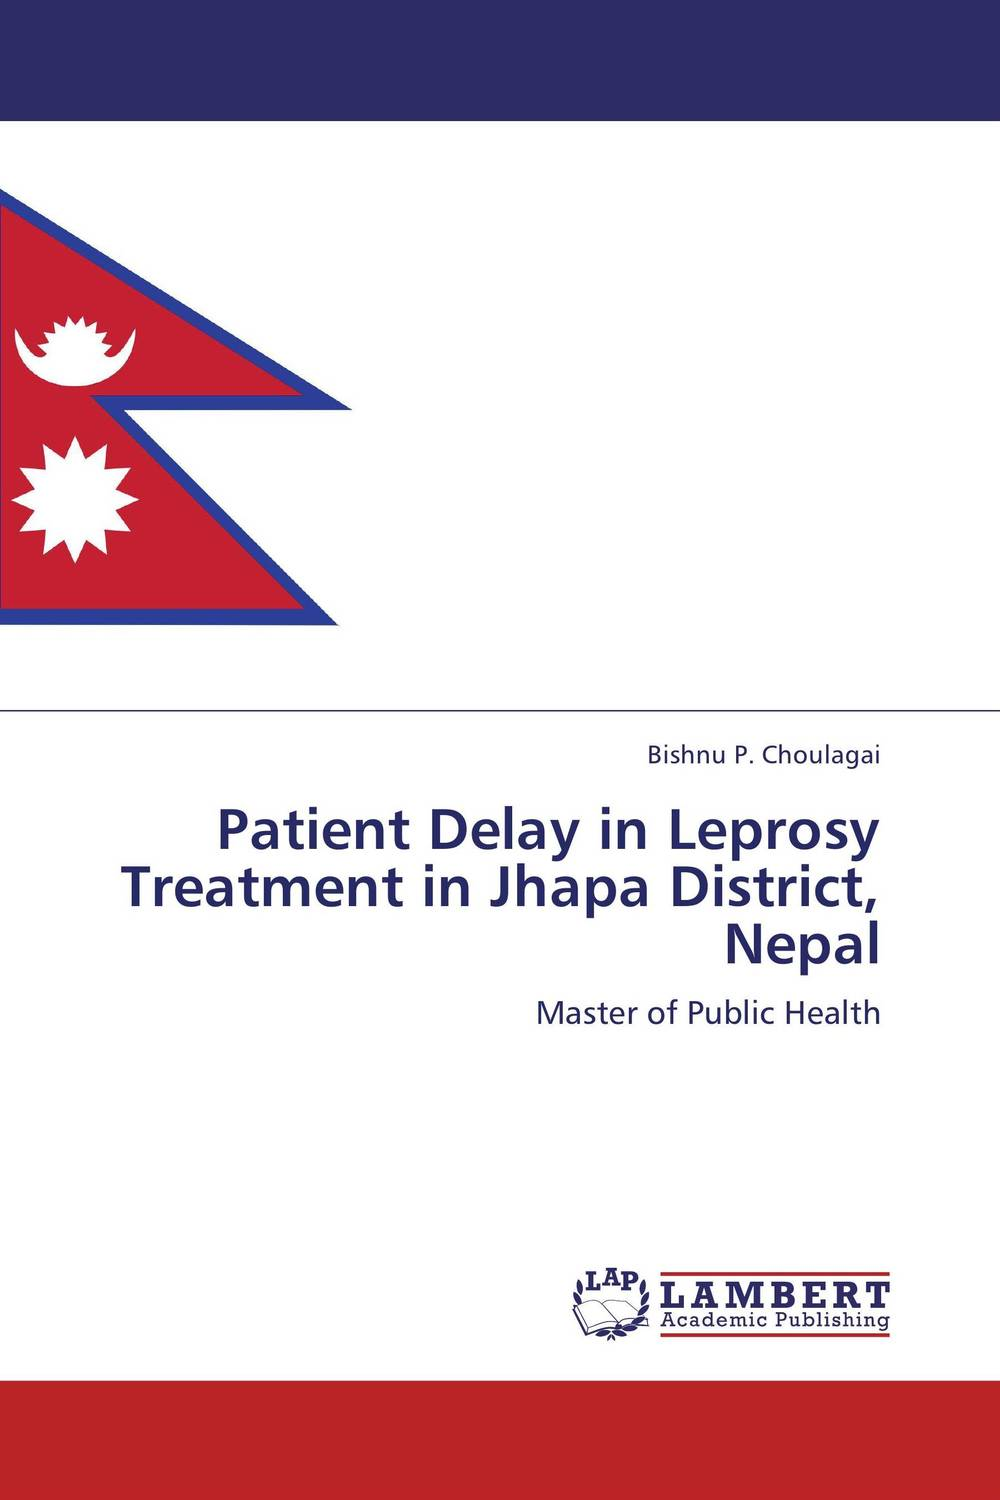 Patient Delay in Leprosy Treatment in Jhapa District, Nepal